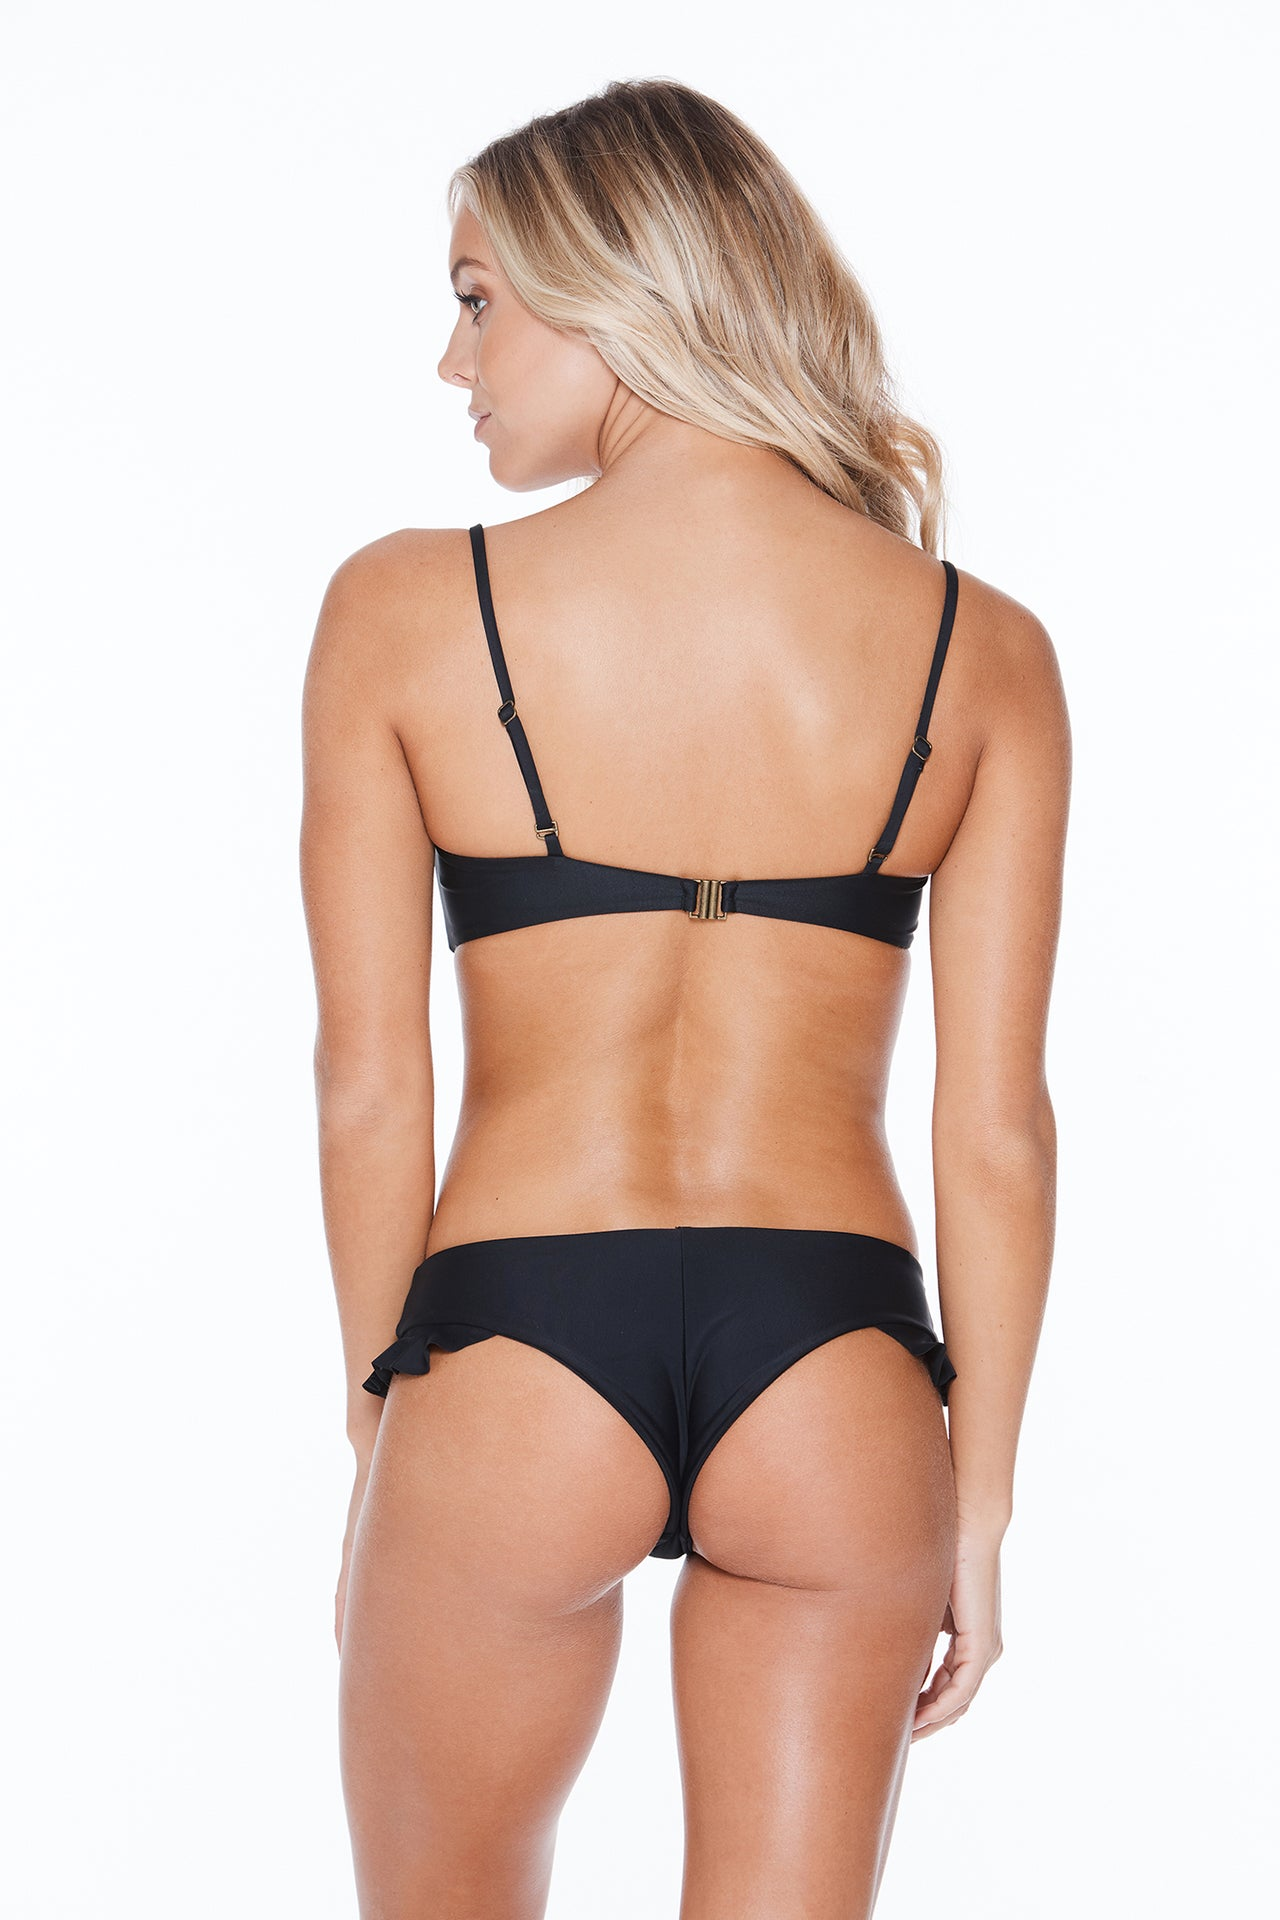 Woodstock Bottom - Black